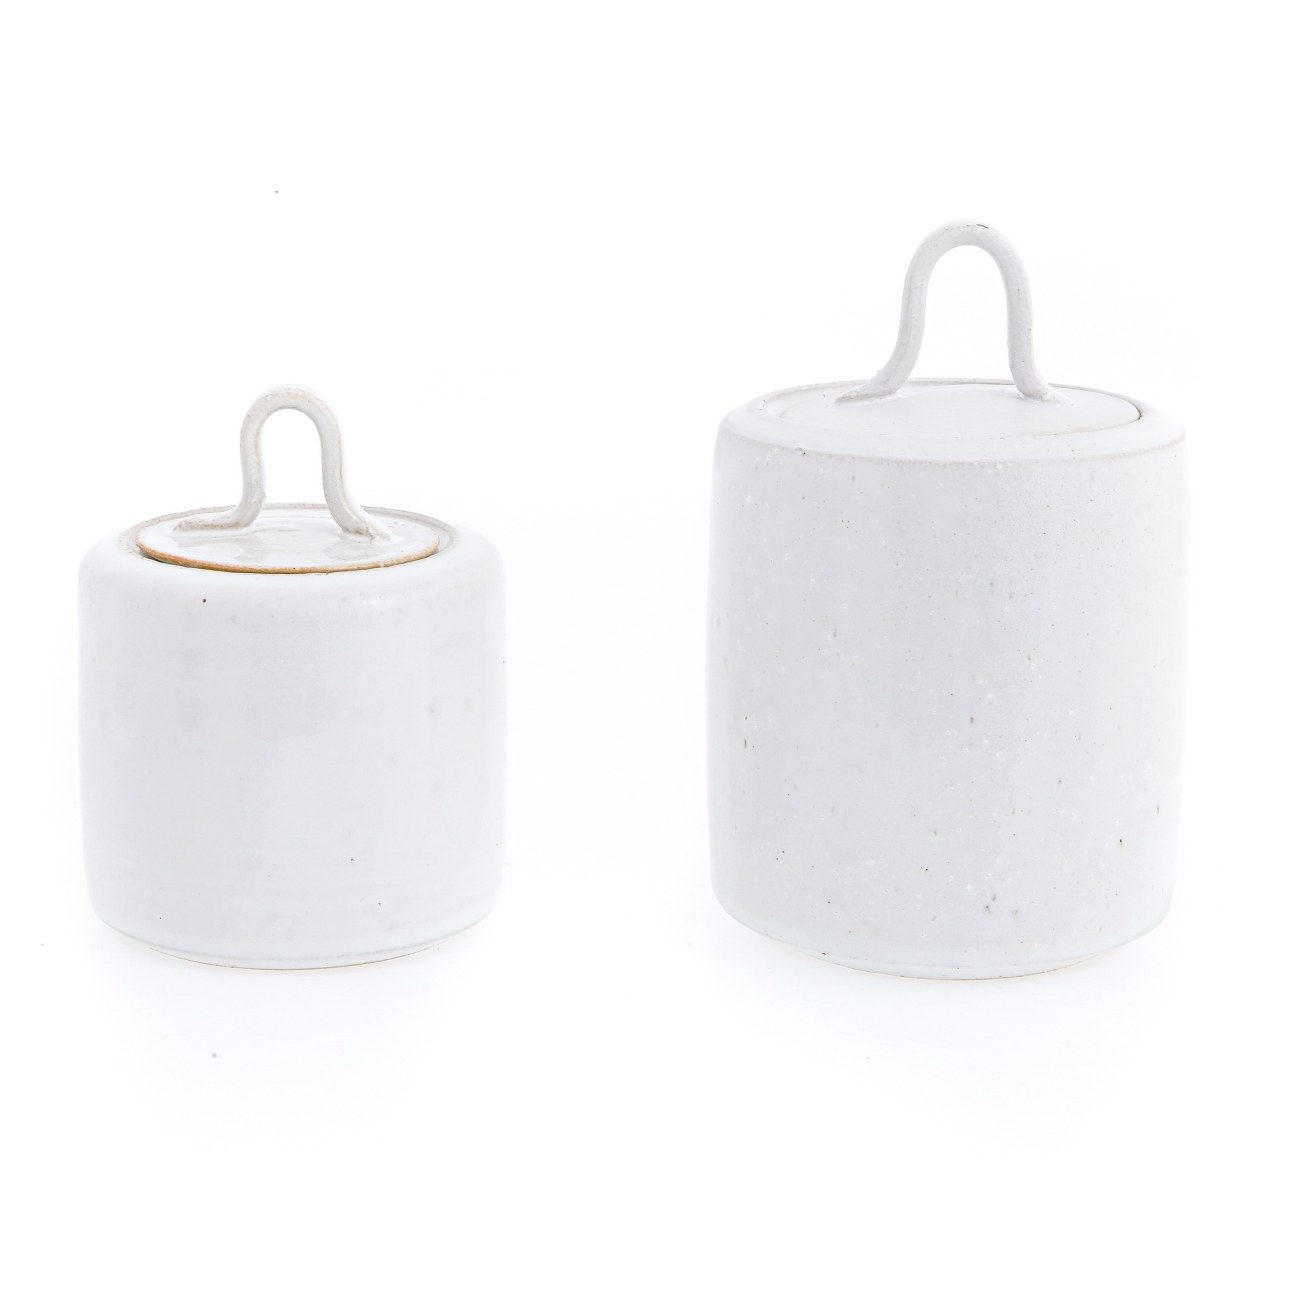 Kitchen Storage Container Or Jar Set Of 2 Handmade Ceramic White Curvy Handle Lid